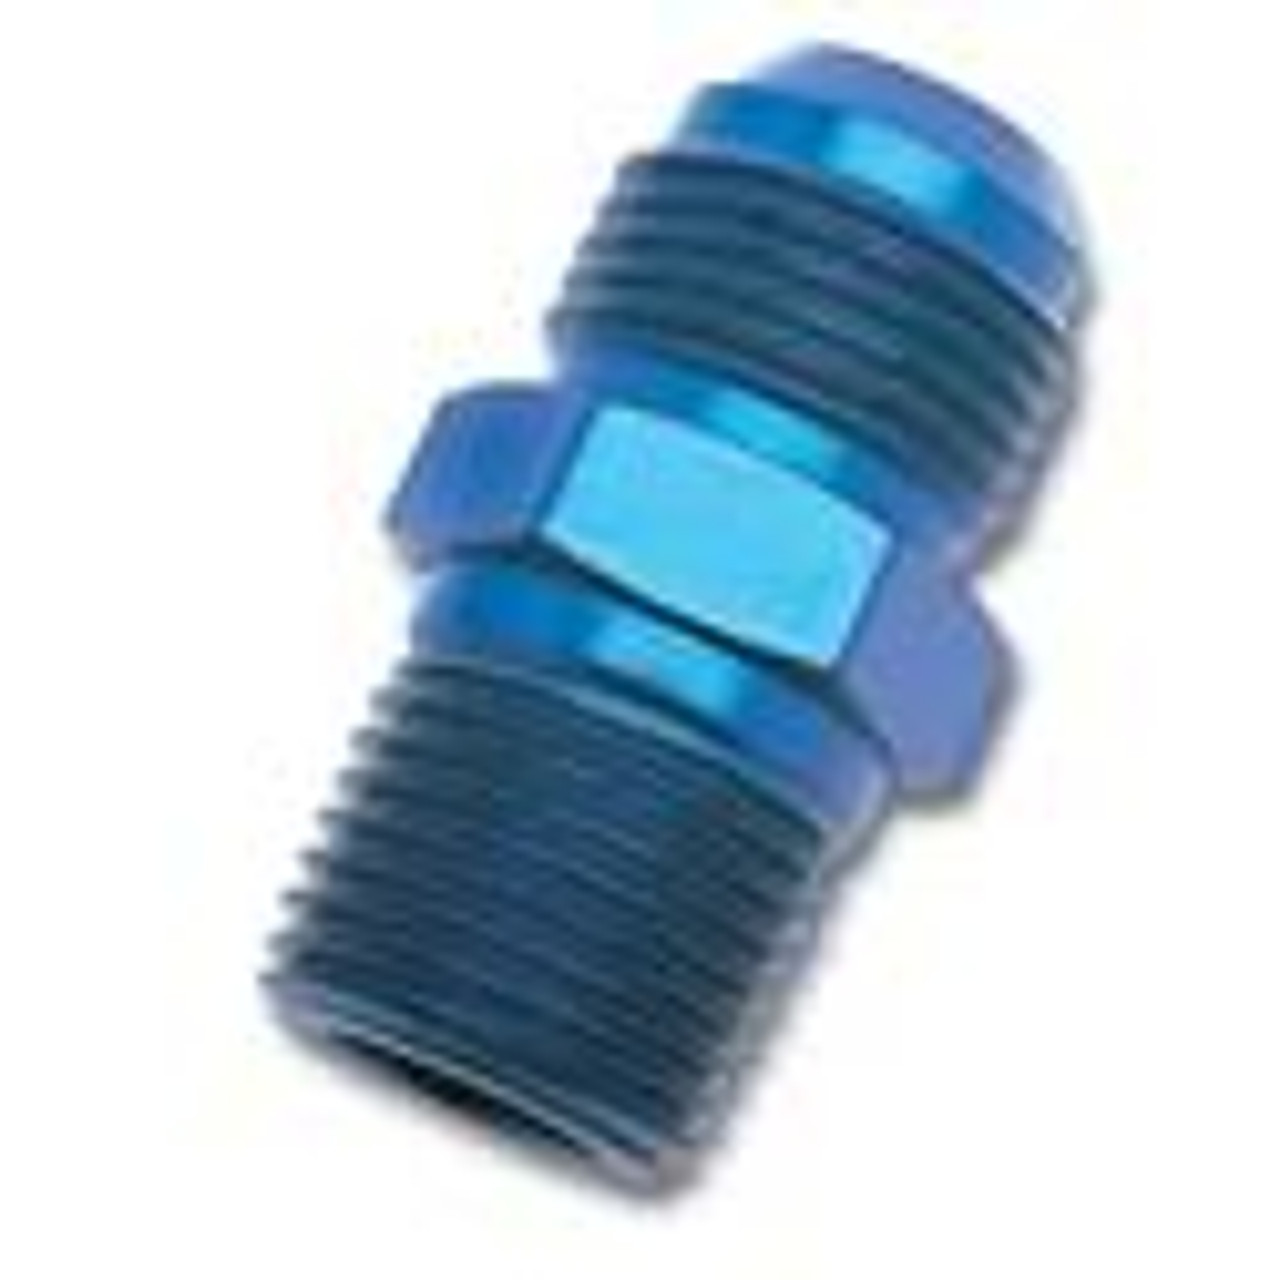 Russell Straight -8 AN to 3/8 Pipe Adapter Fitting